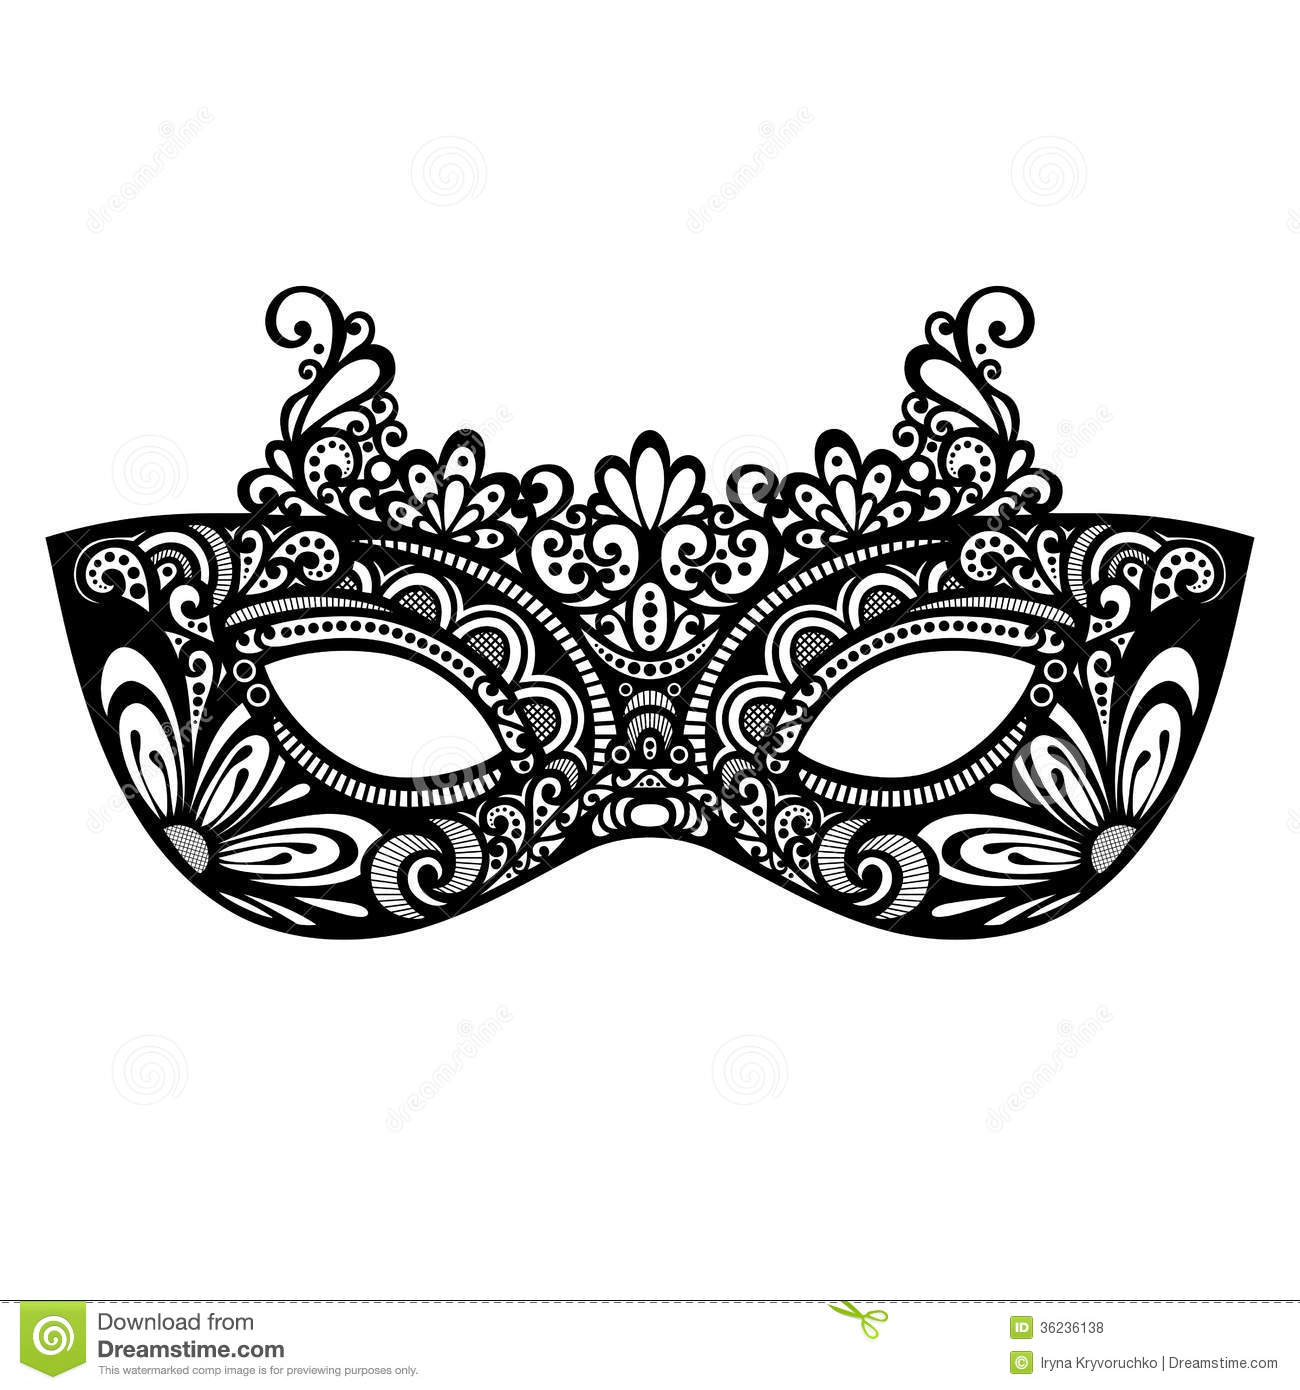 Masquerade Mask Royalty Free Stock Photos - Image: 36236138